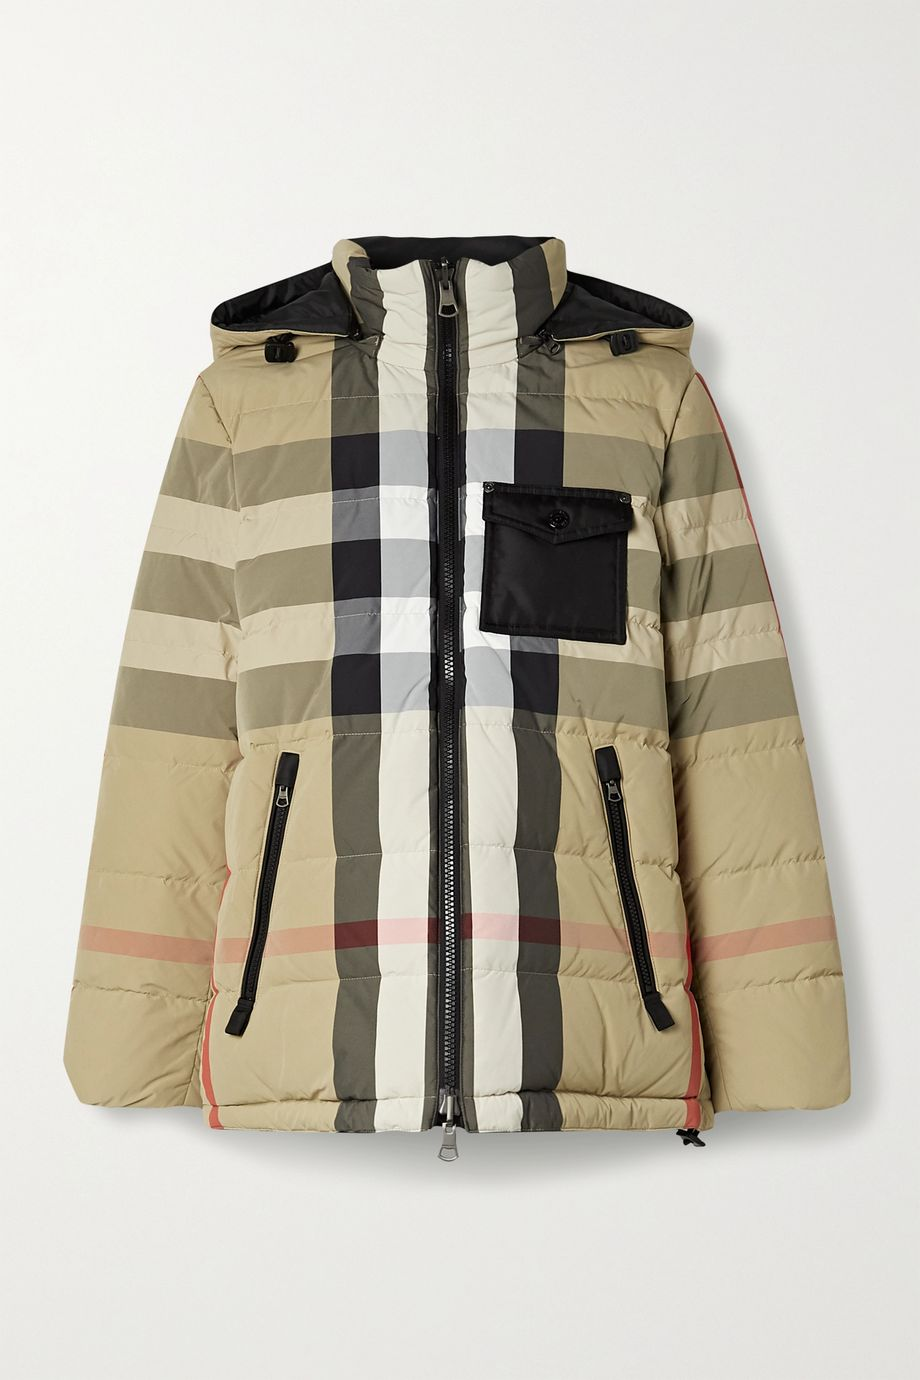 Burberry, Reversible checked quilted shell down jacket 